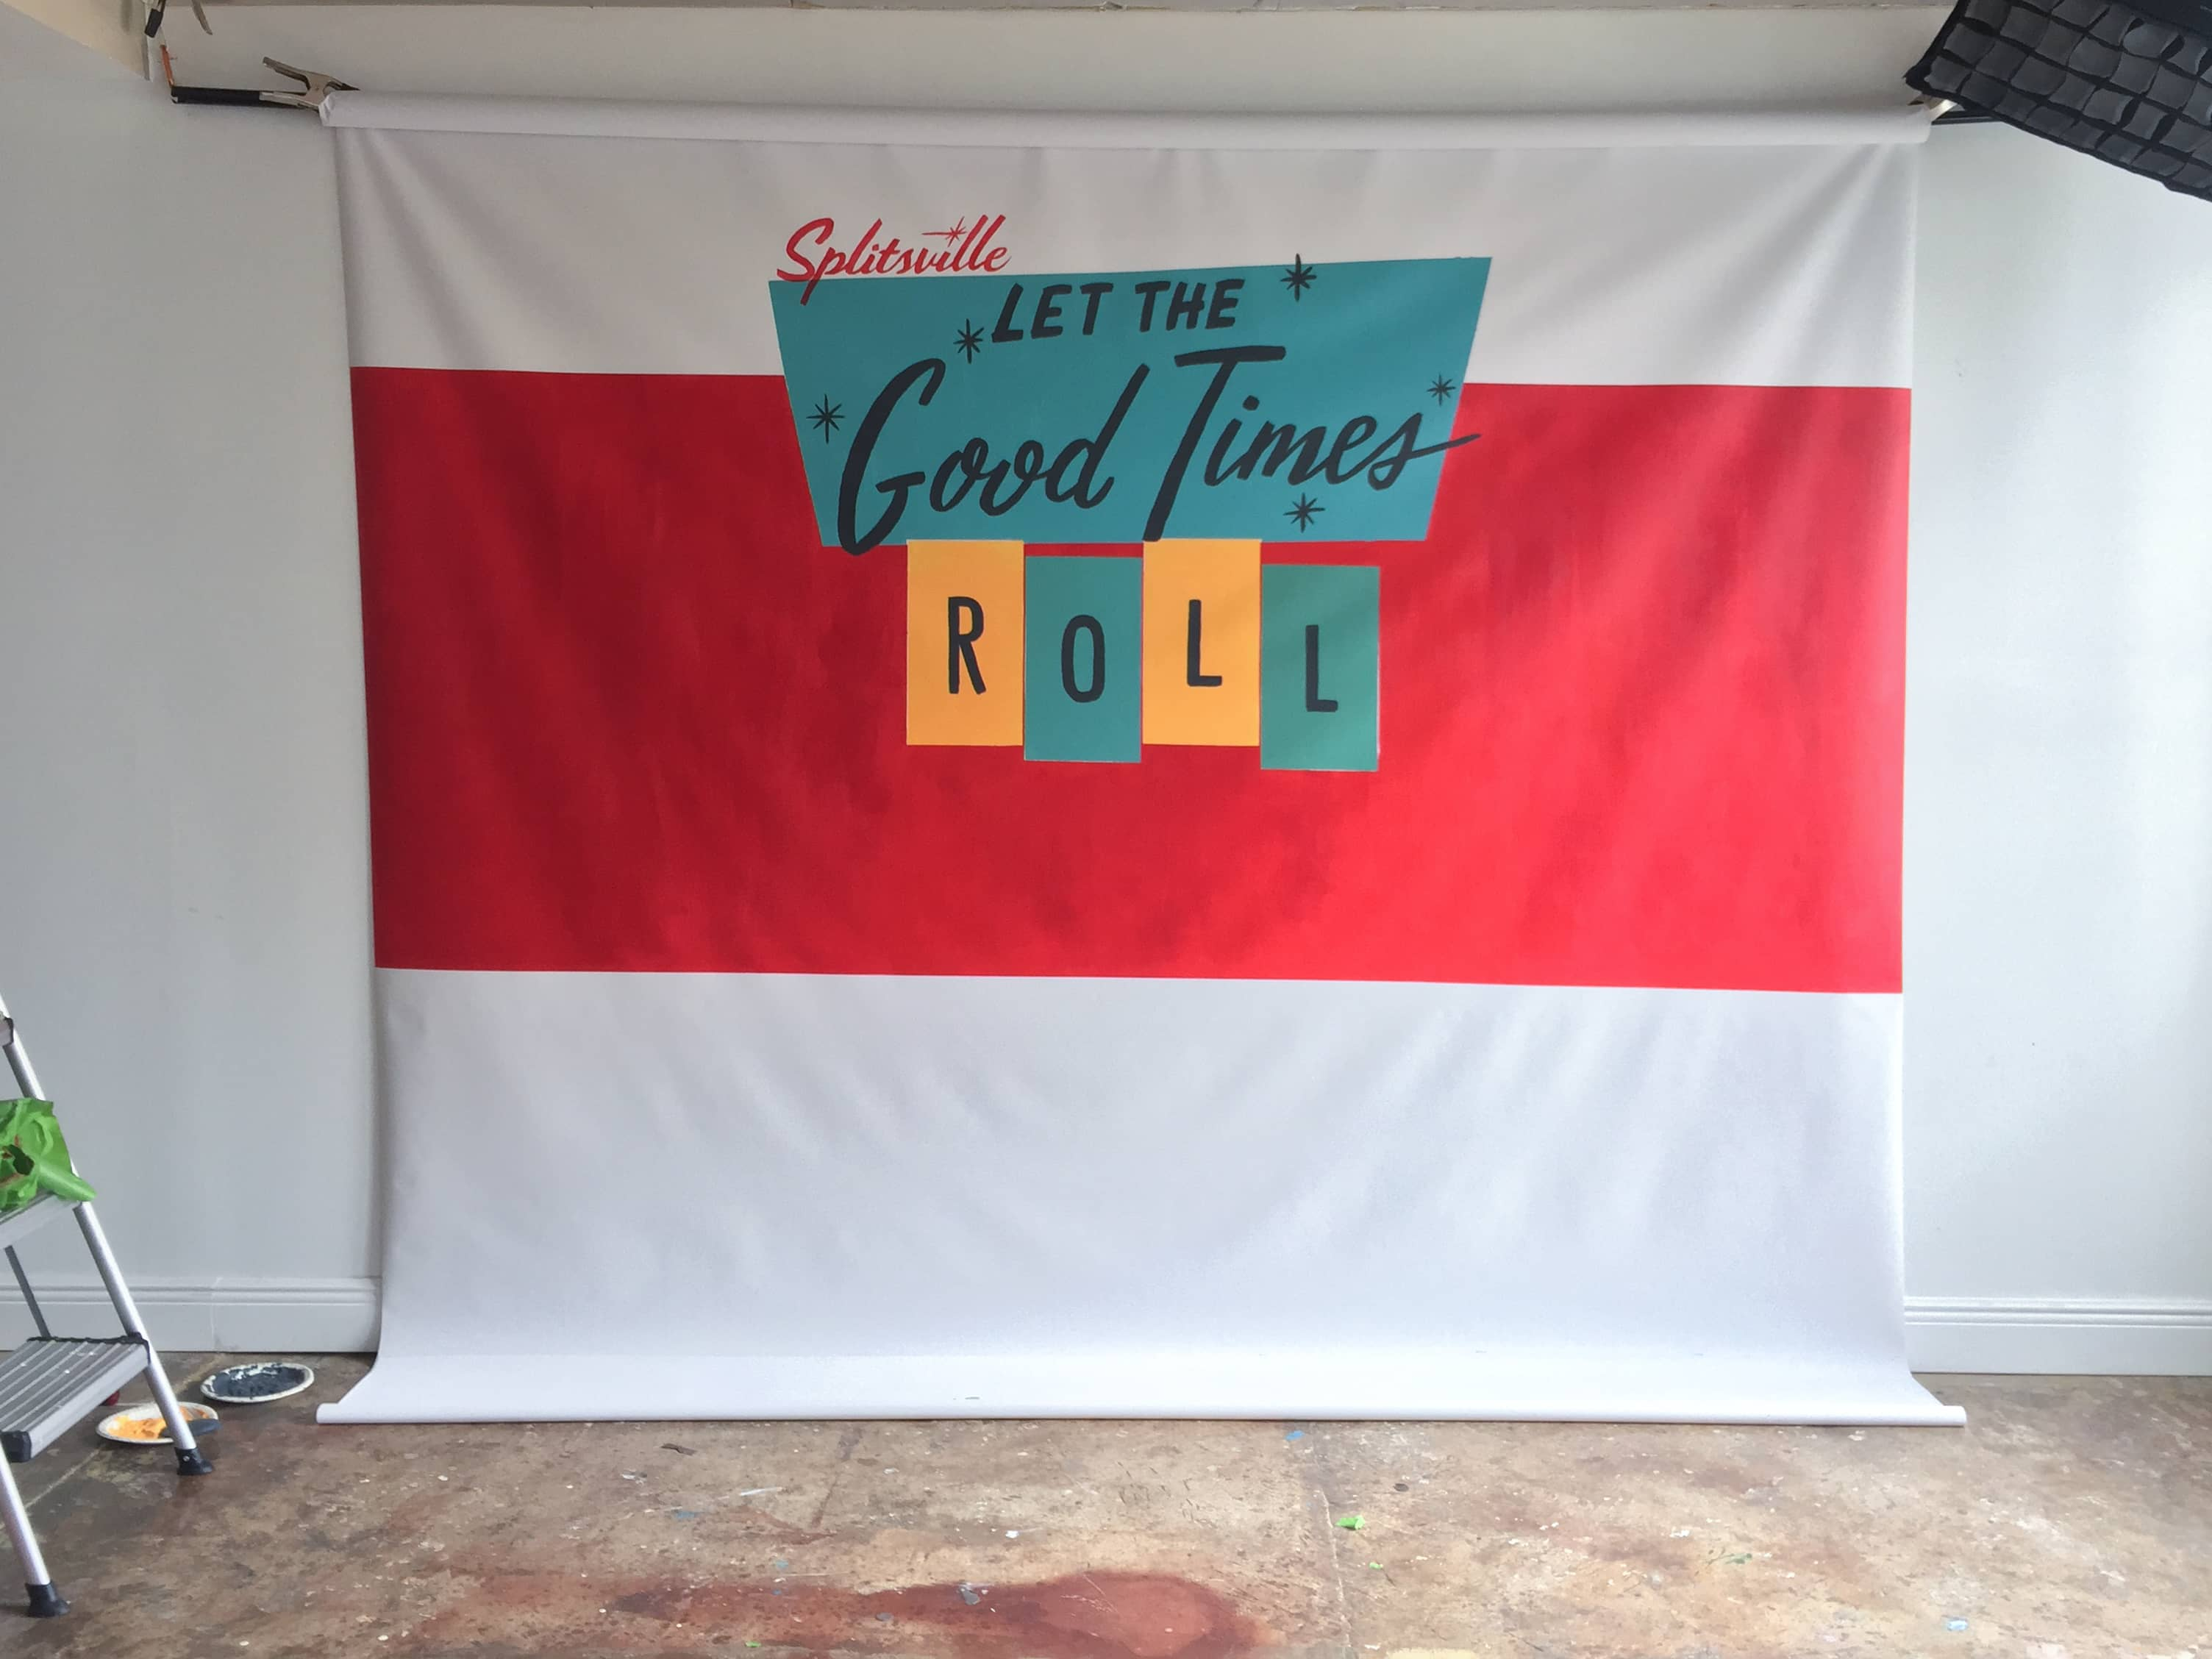 Let the Good Times Roll hand lettered Splitsville backdrop